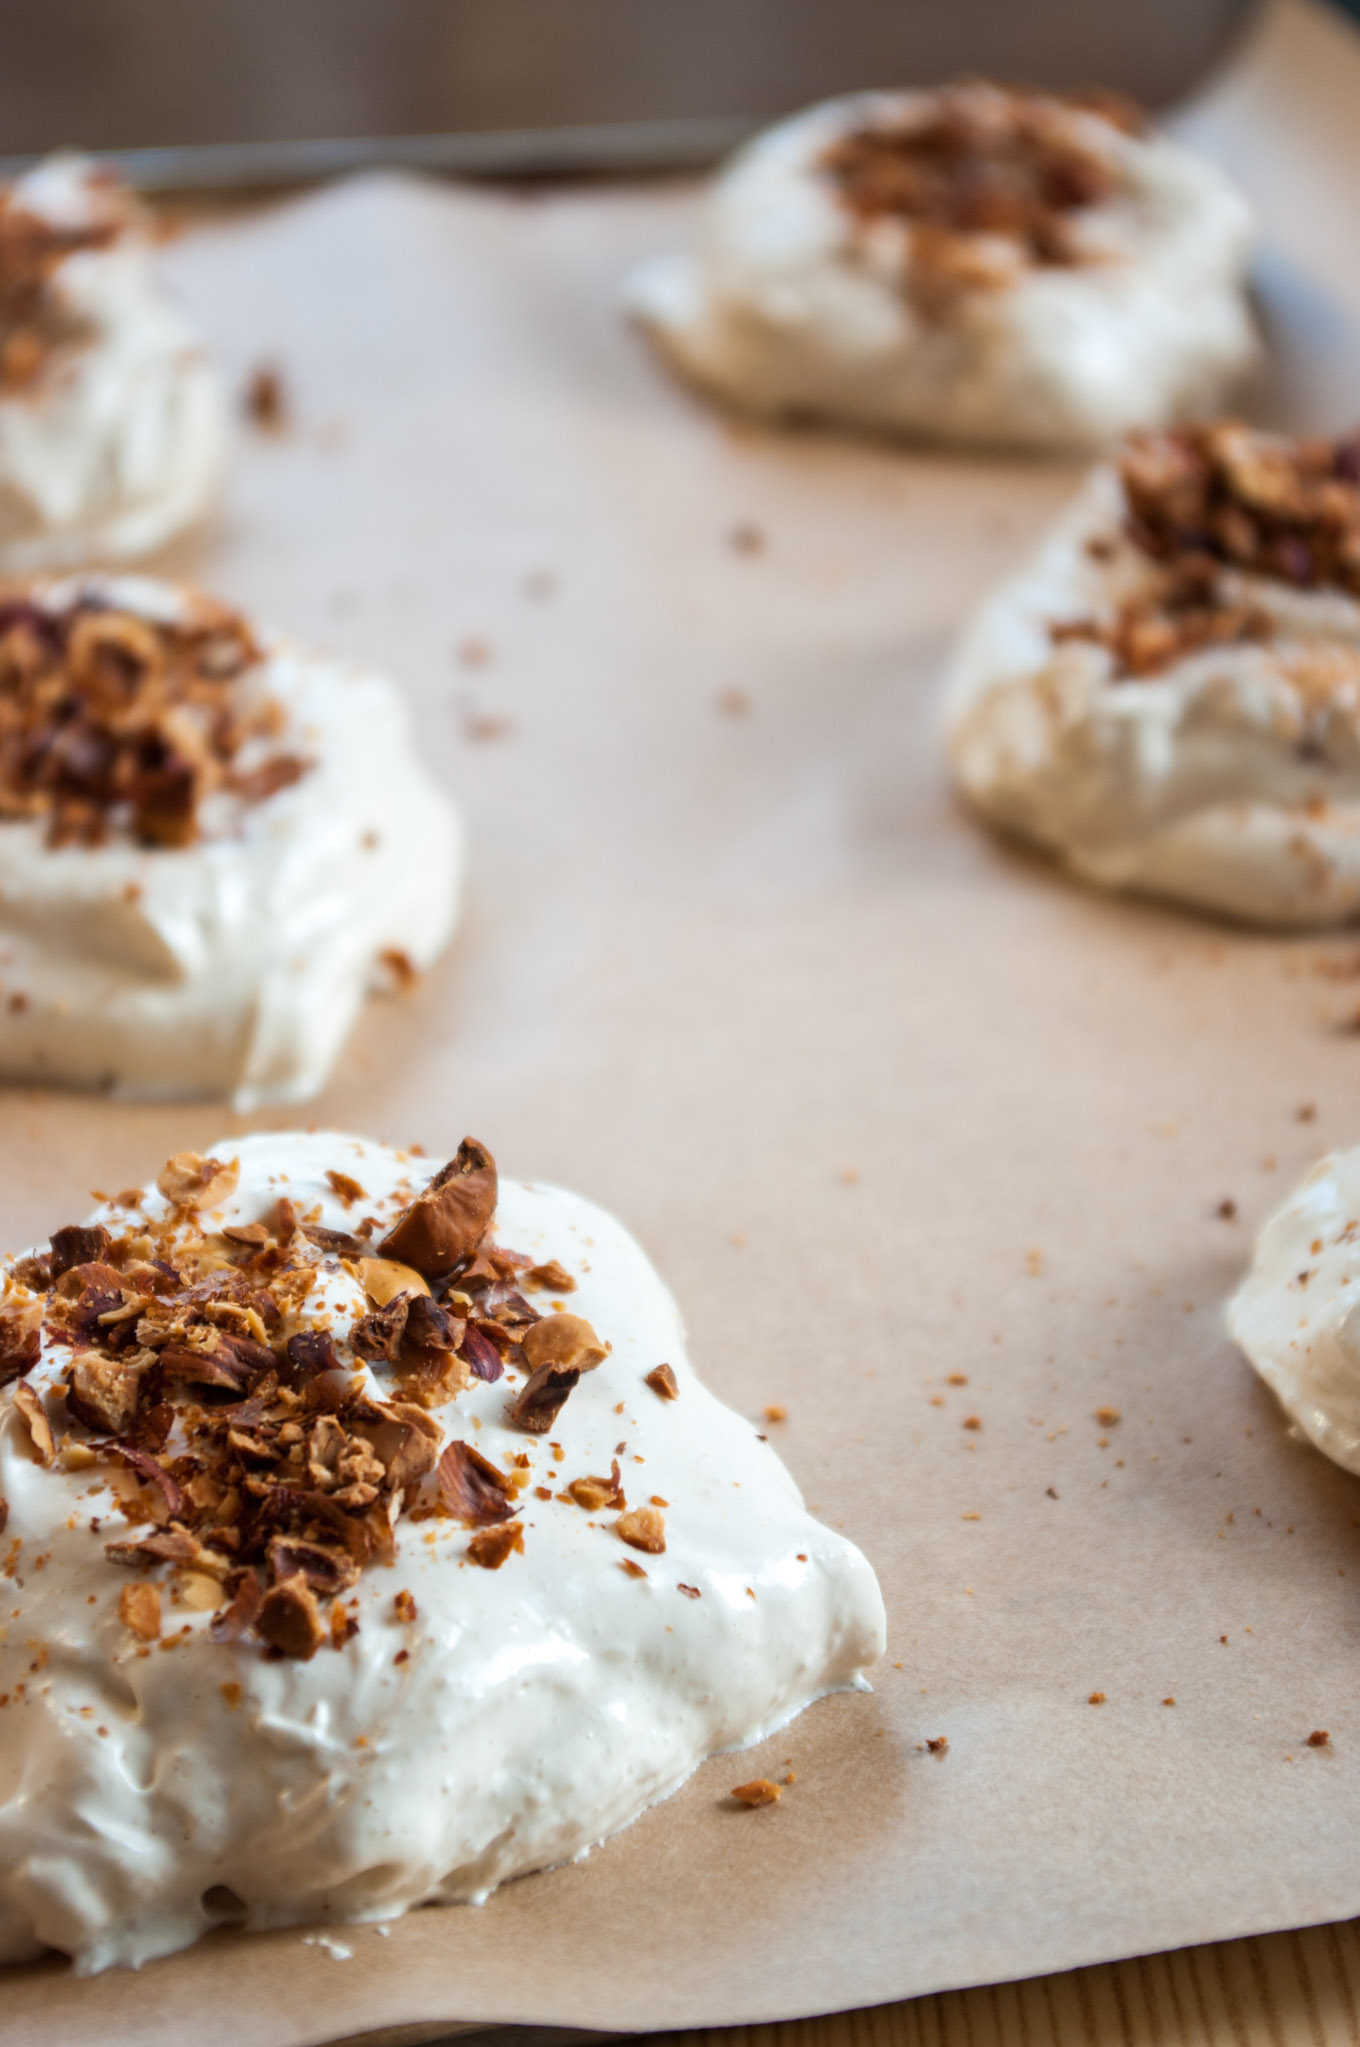 Hazelnut Meringues with Berry Sauce and Cream – Crispy, chewy, nutty meringues served with a spiced berry sauce and clouds of whipped cream. A gorgeous autumn dessert. By @deliciouscratch | deliciousfromscratch.com